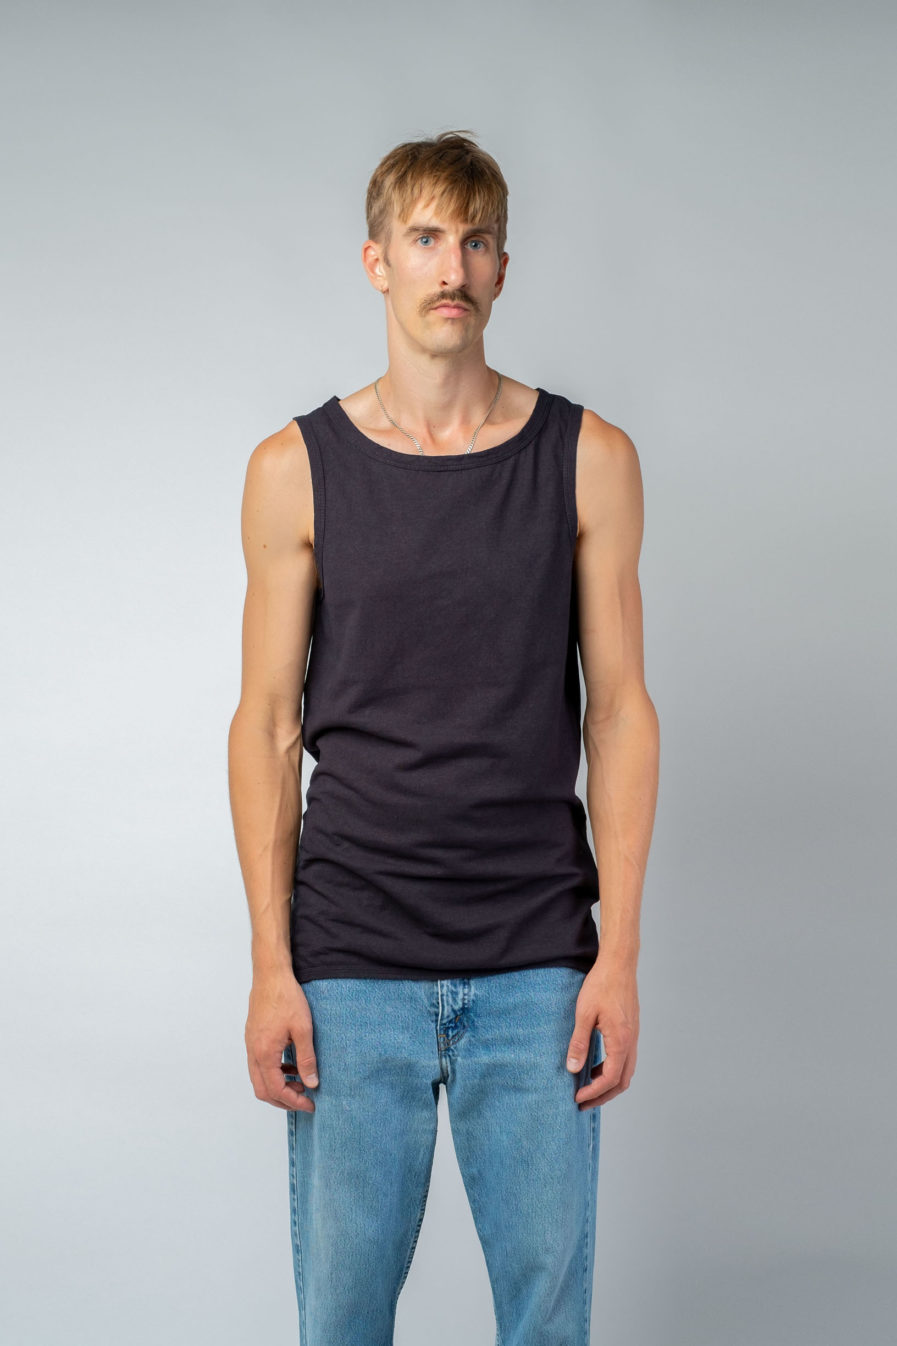 MAN unisex singlet tanktop hemp organic cotton WILLIE Carbon black front